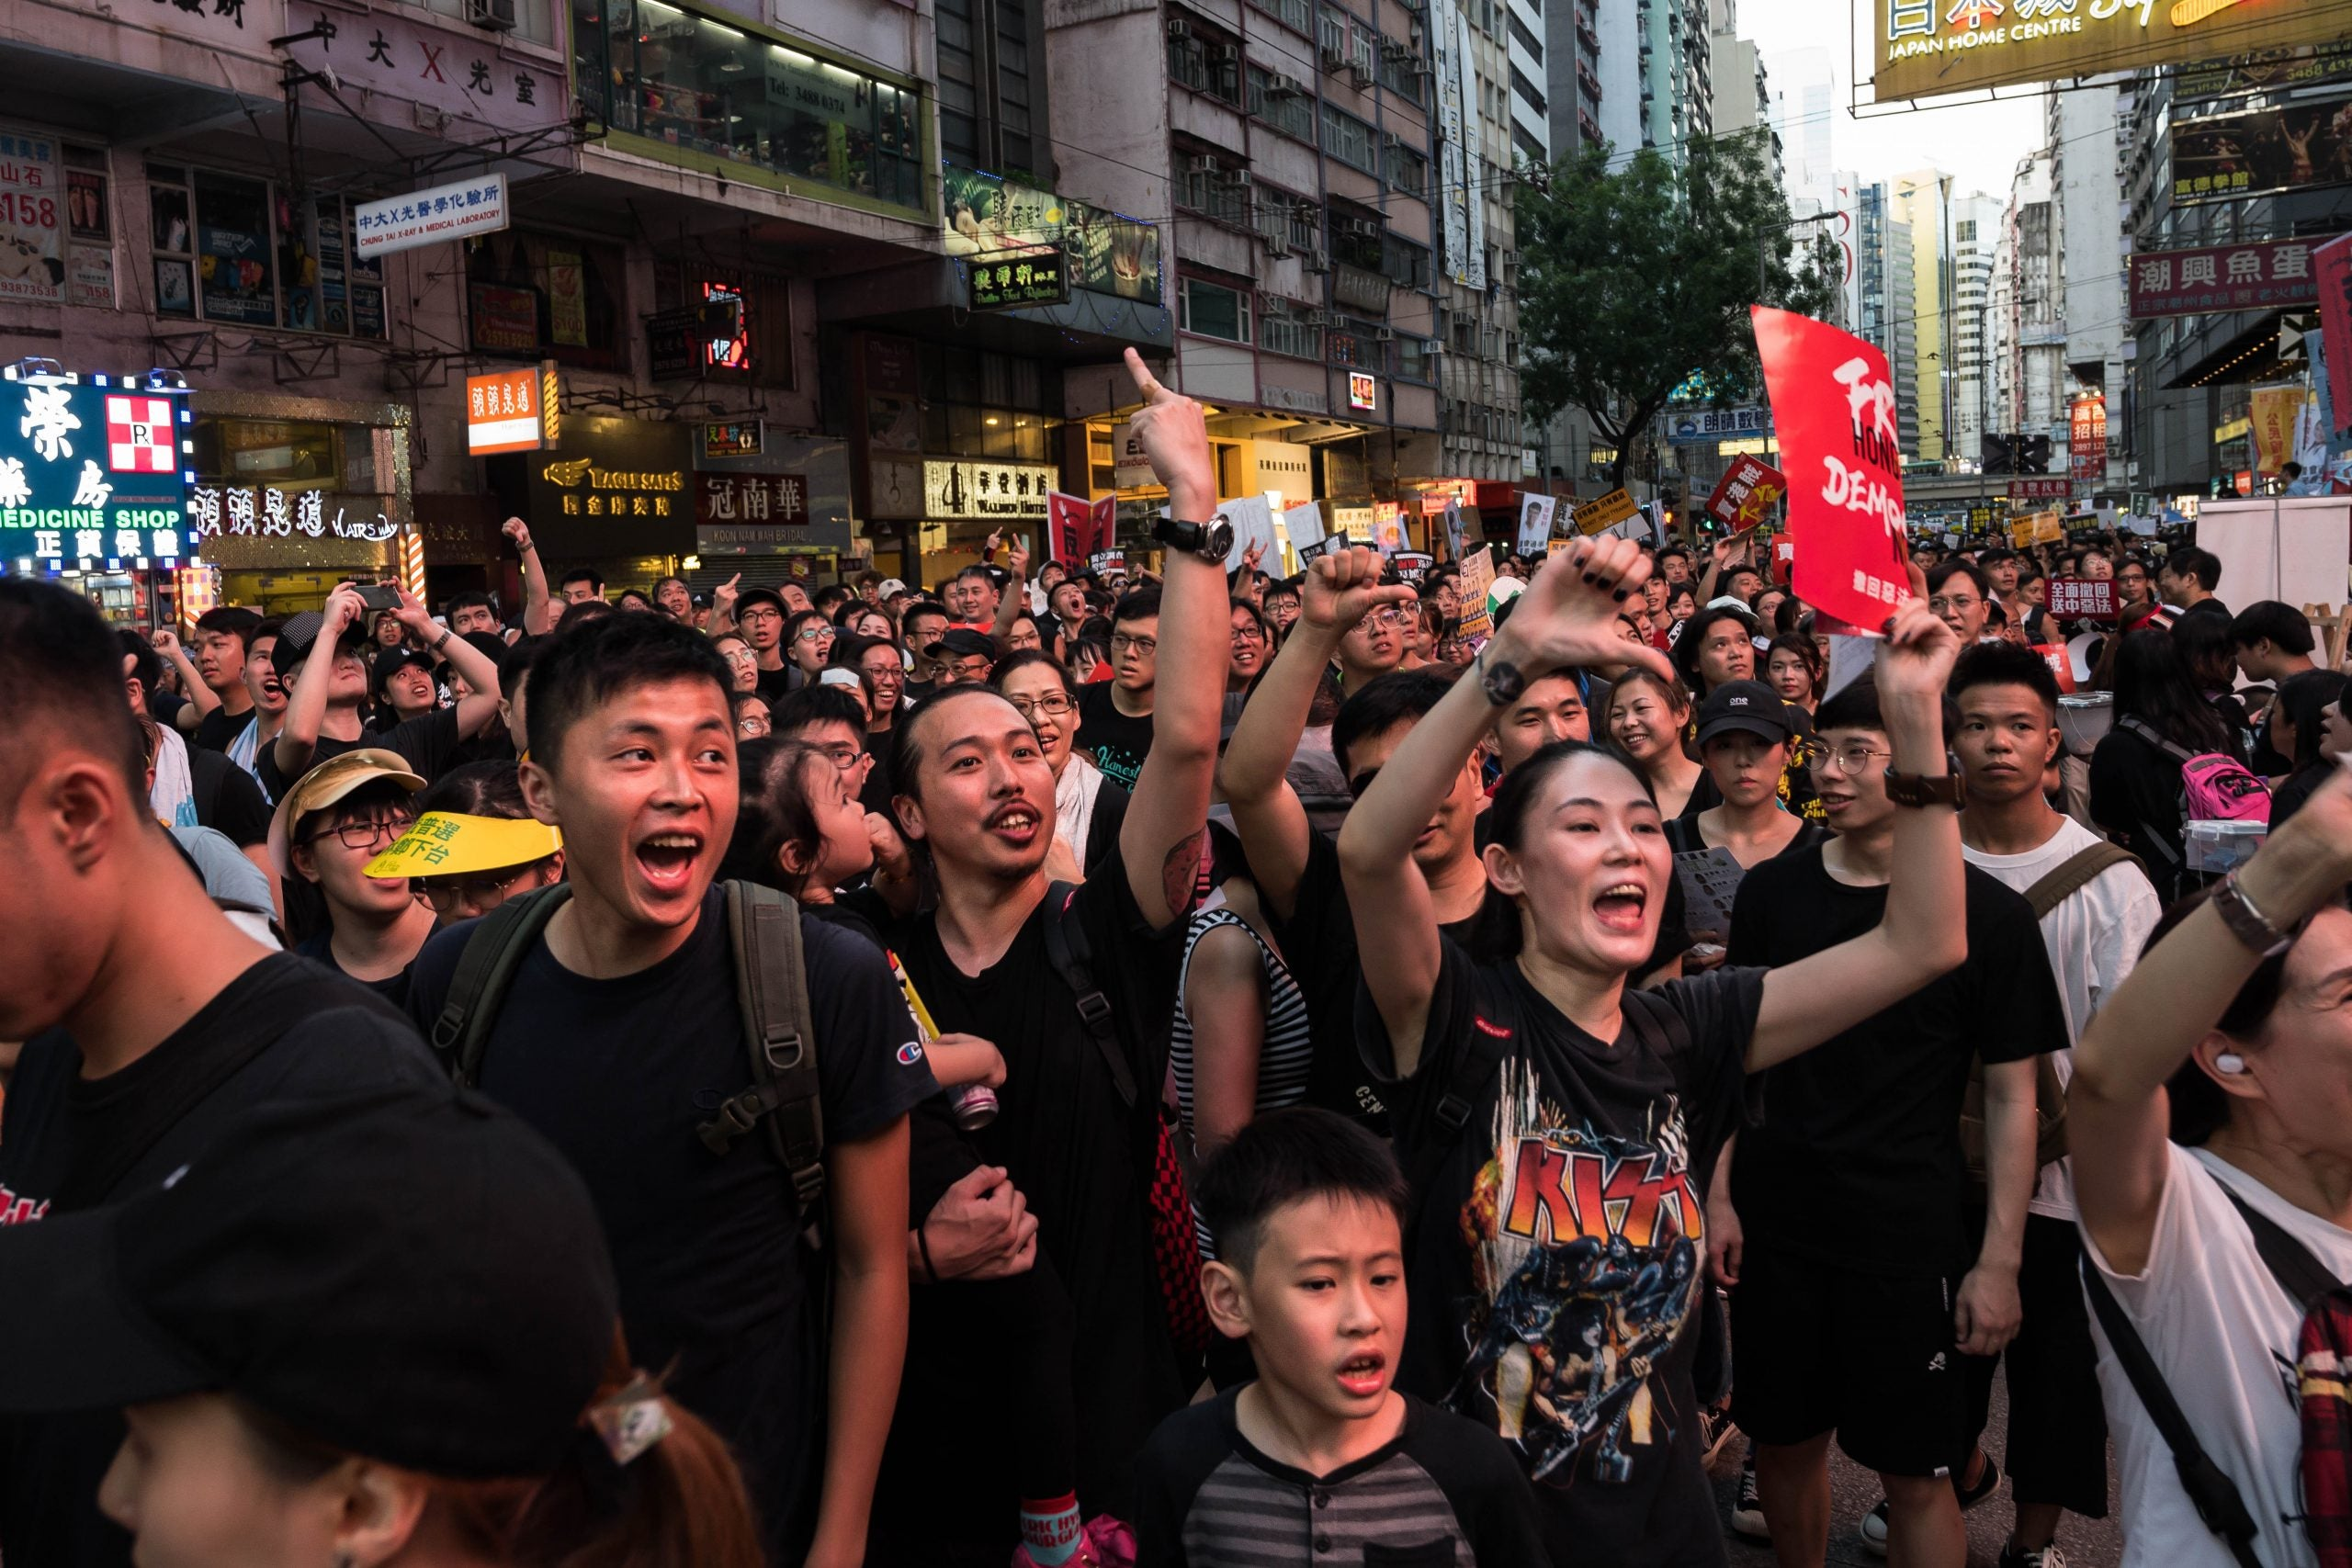 Should the UK do anything about the unrest in Hong Kong?